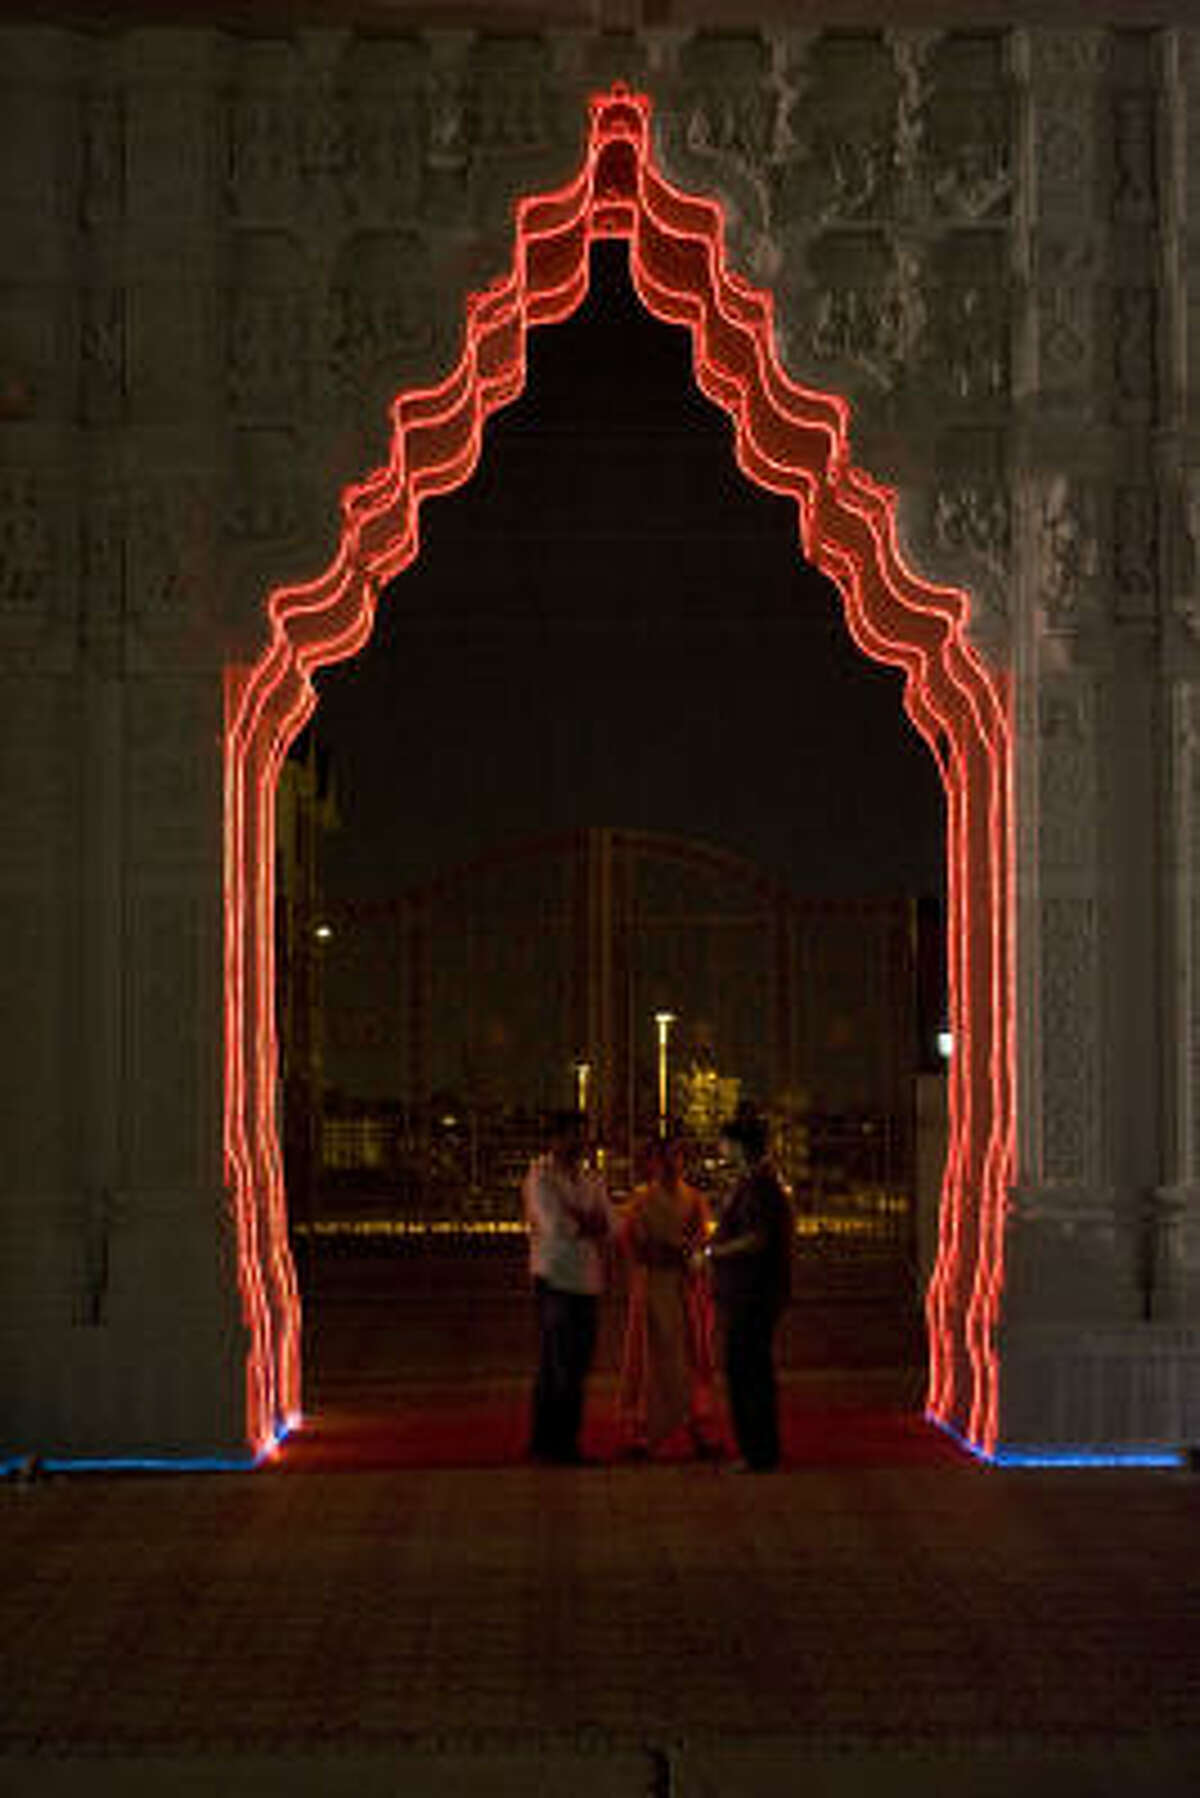 Paresh Patel, from left, Sadhu Shewmunidas and Pragnesh Prajapati stand under an arch during preparations for the festival.